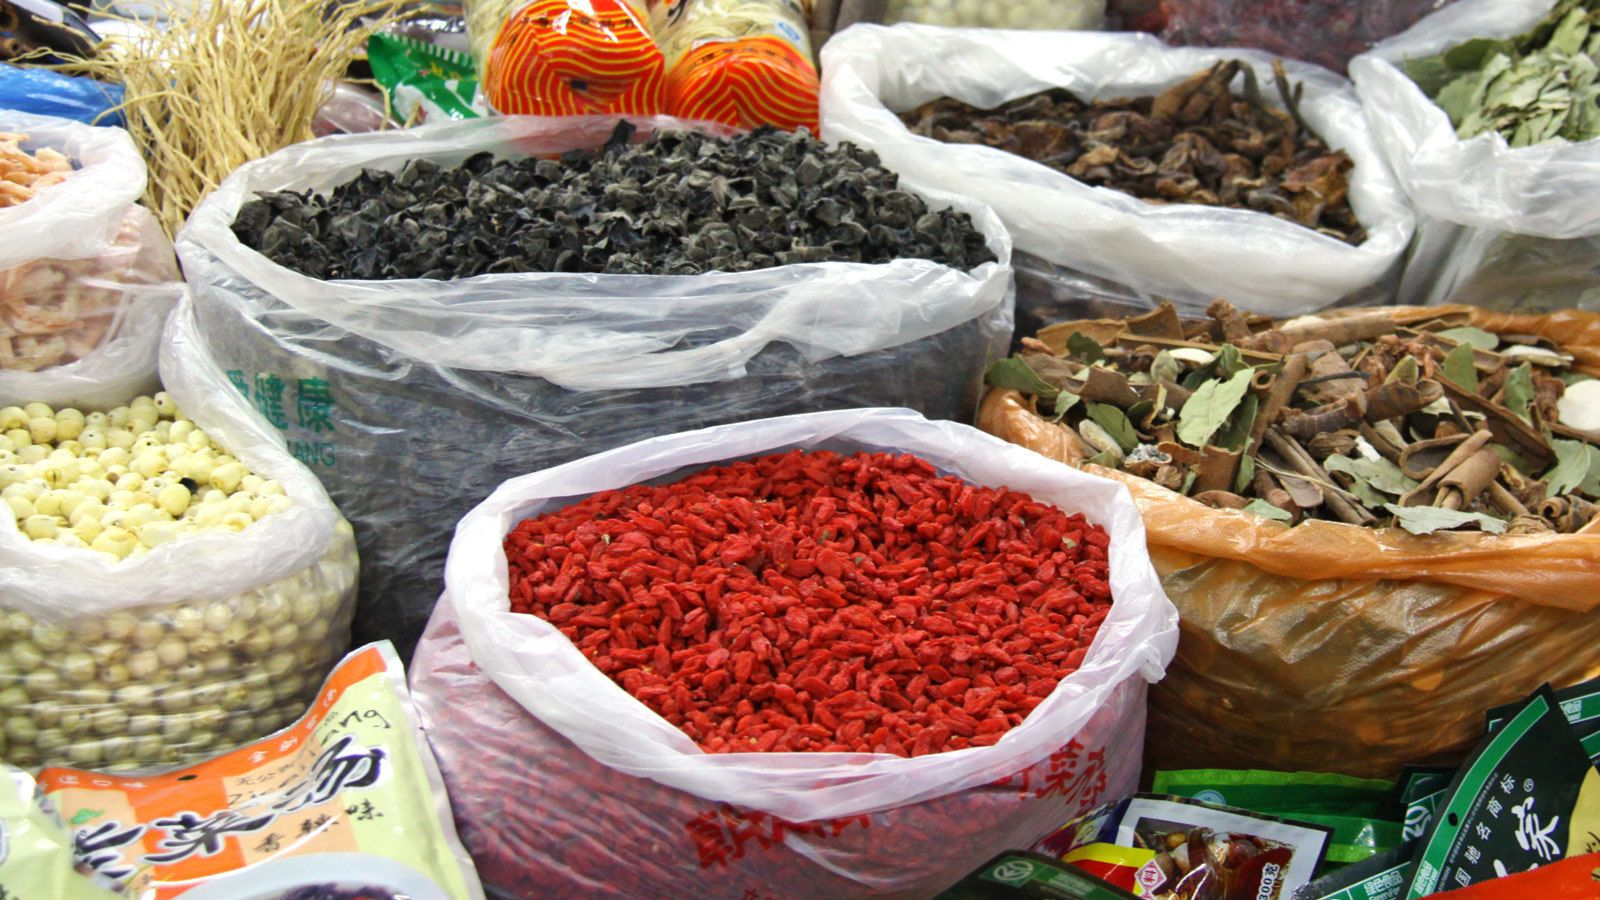 Bags of Chinese spices